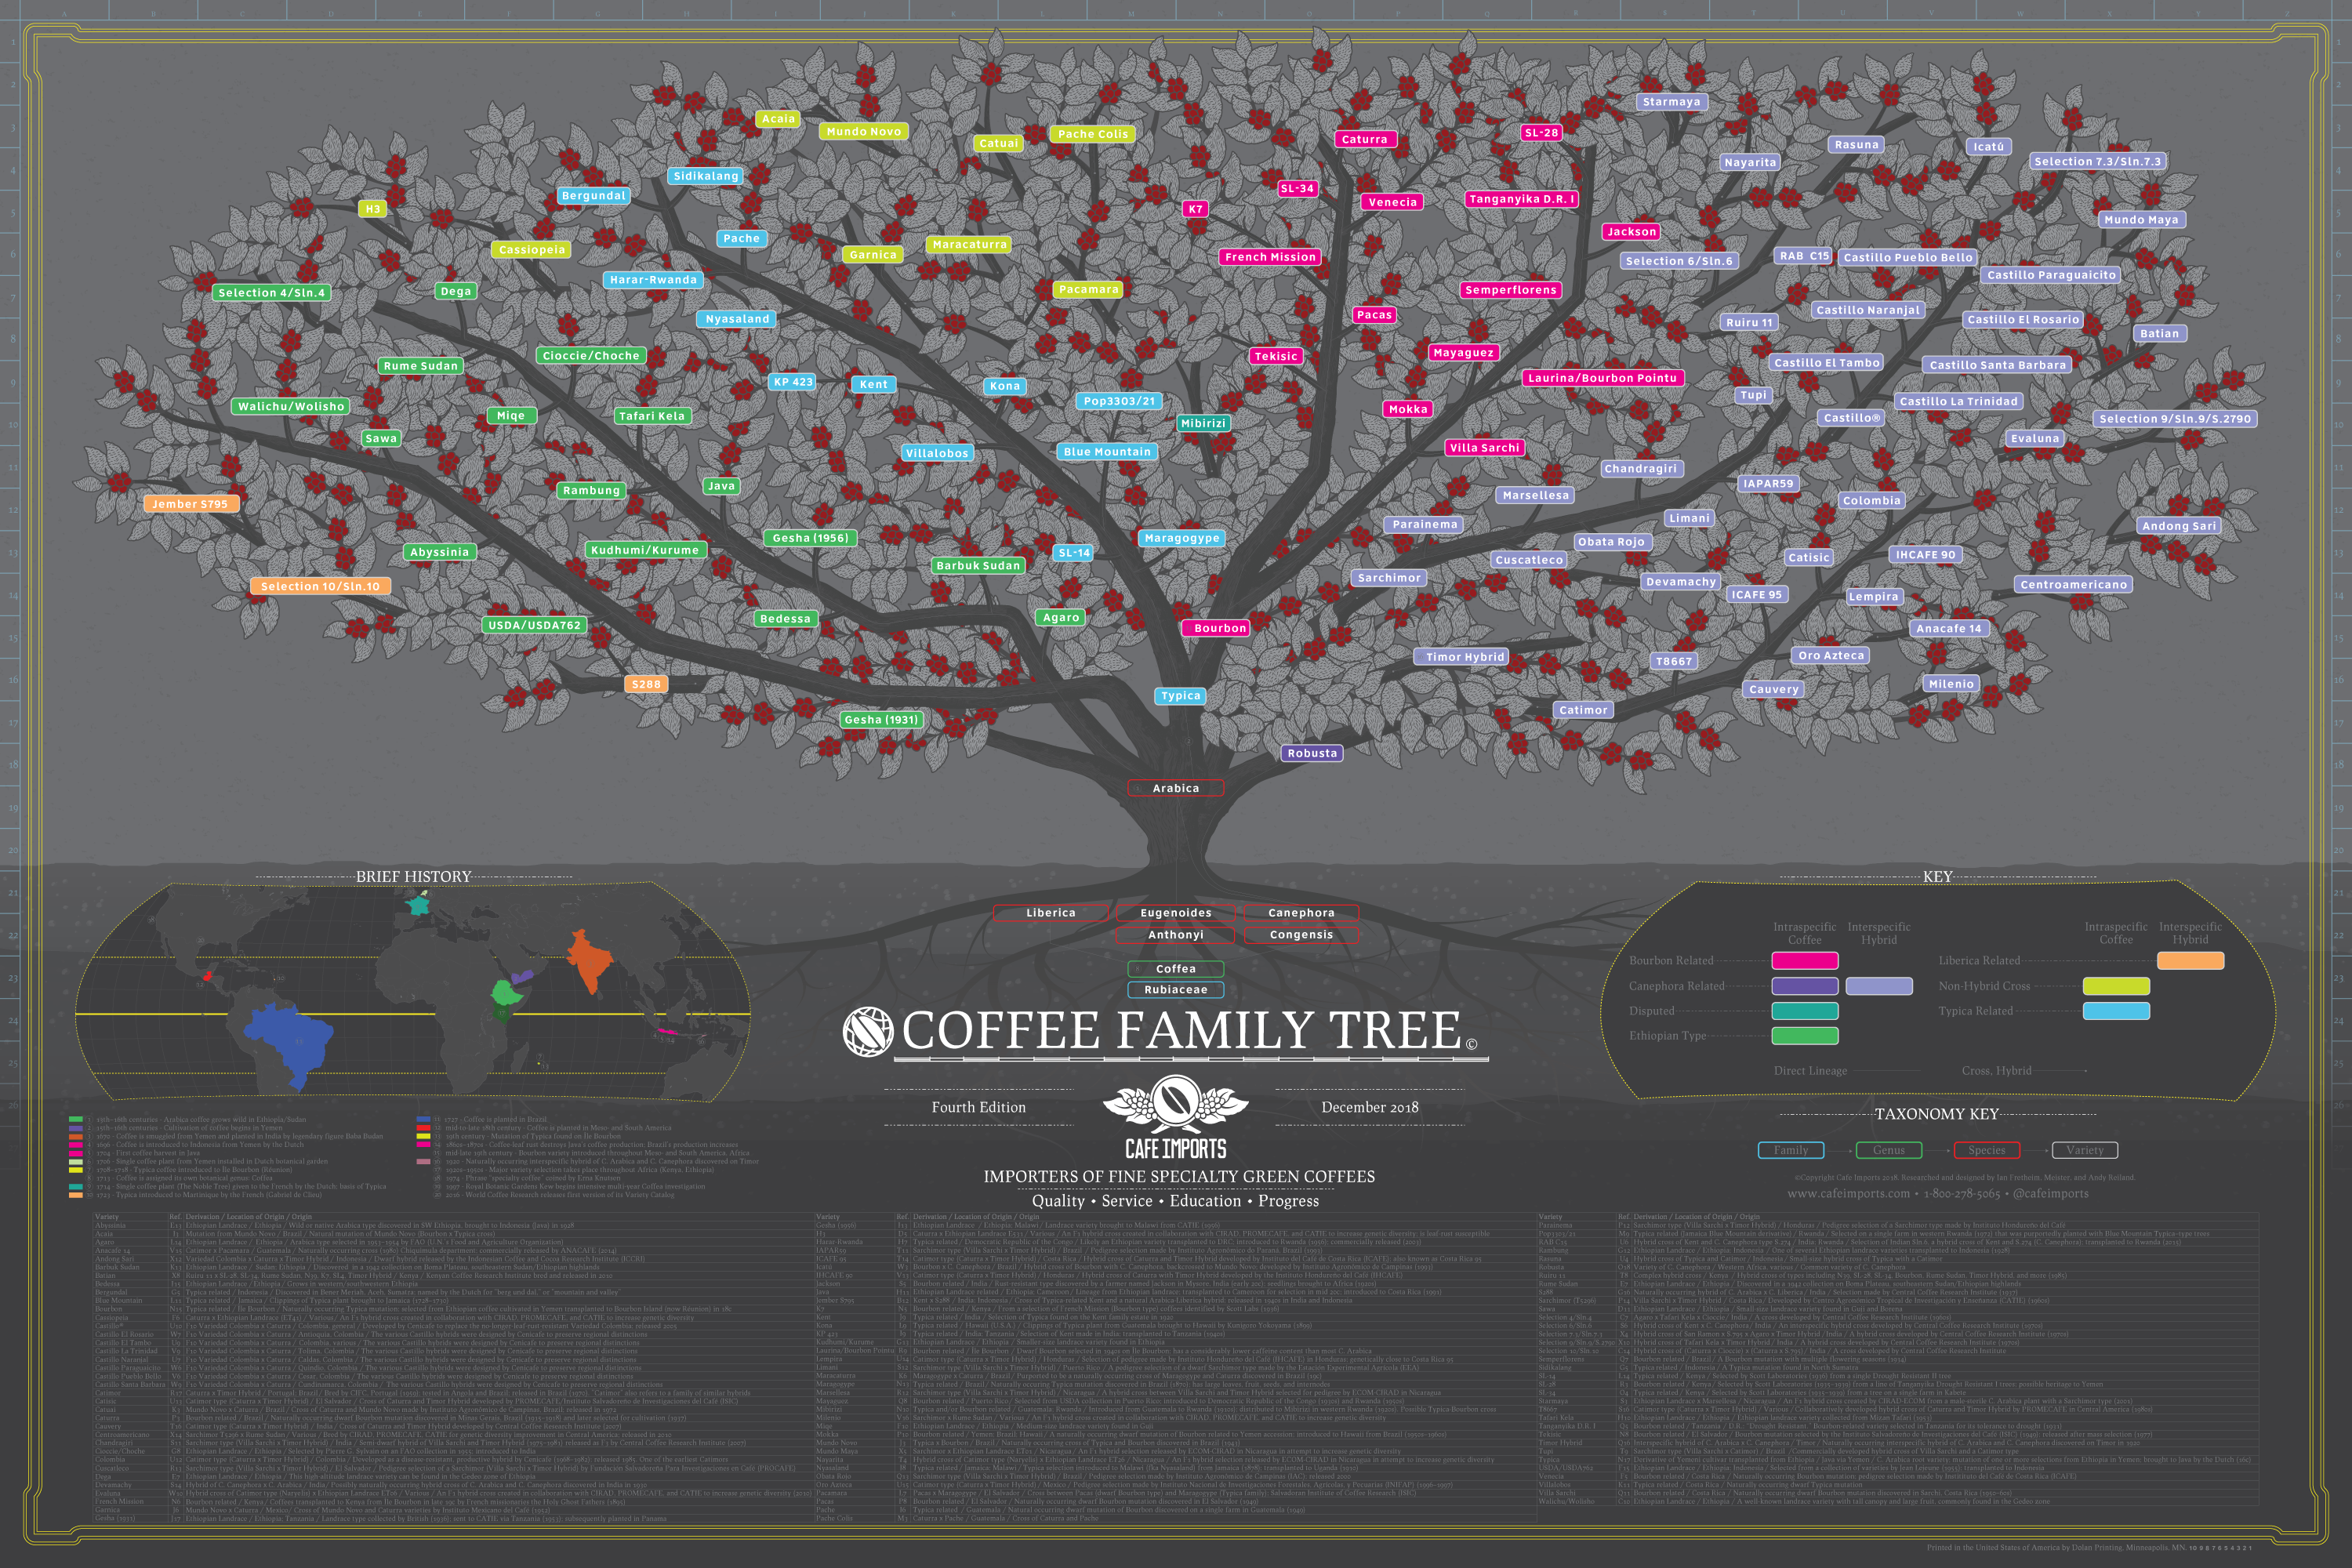 The Cafe Imports Coffee Family Tree, fourth edition